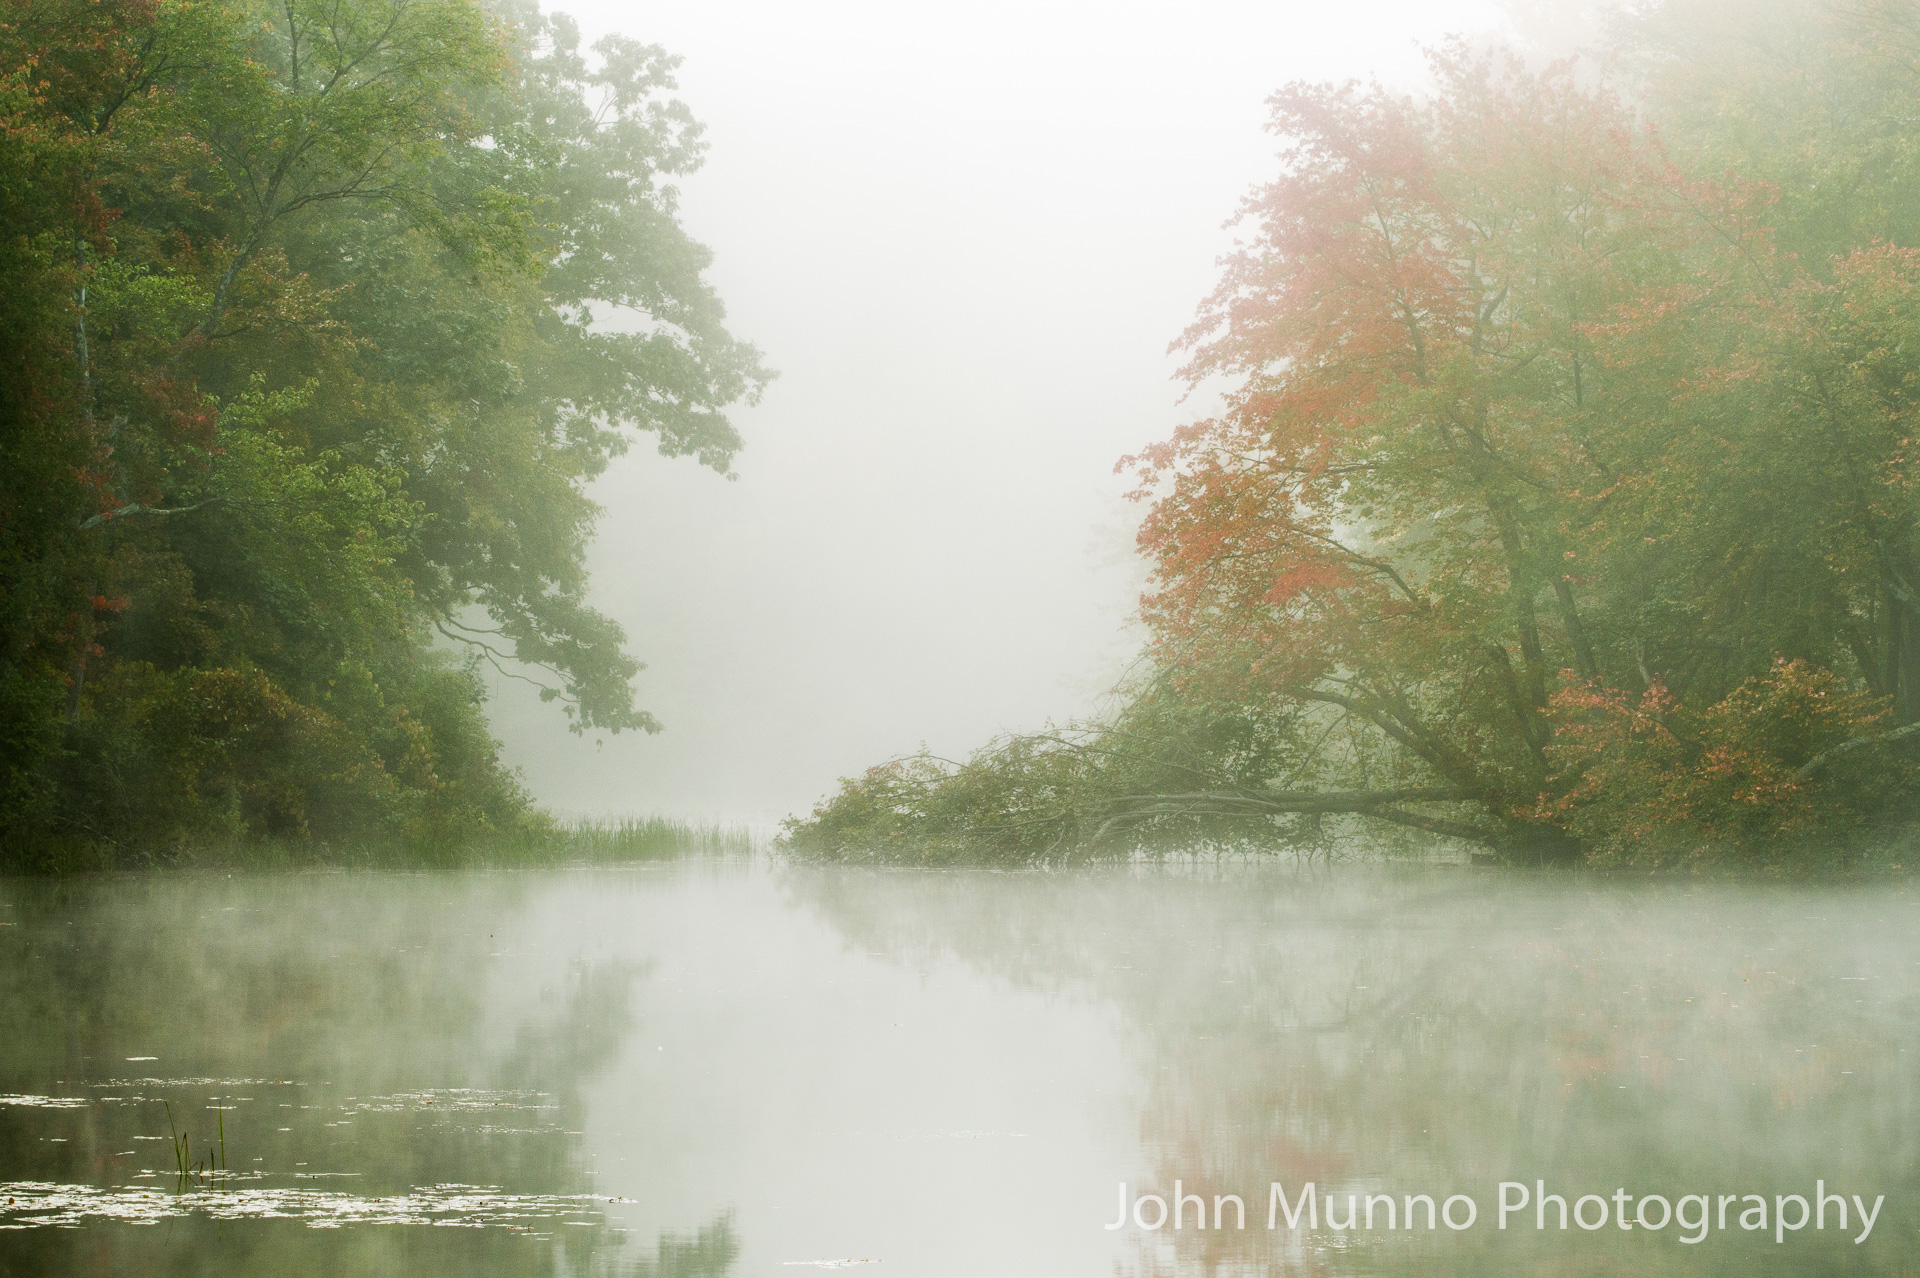 Misty lake in Southford, CT (John Munno Photography)